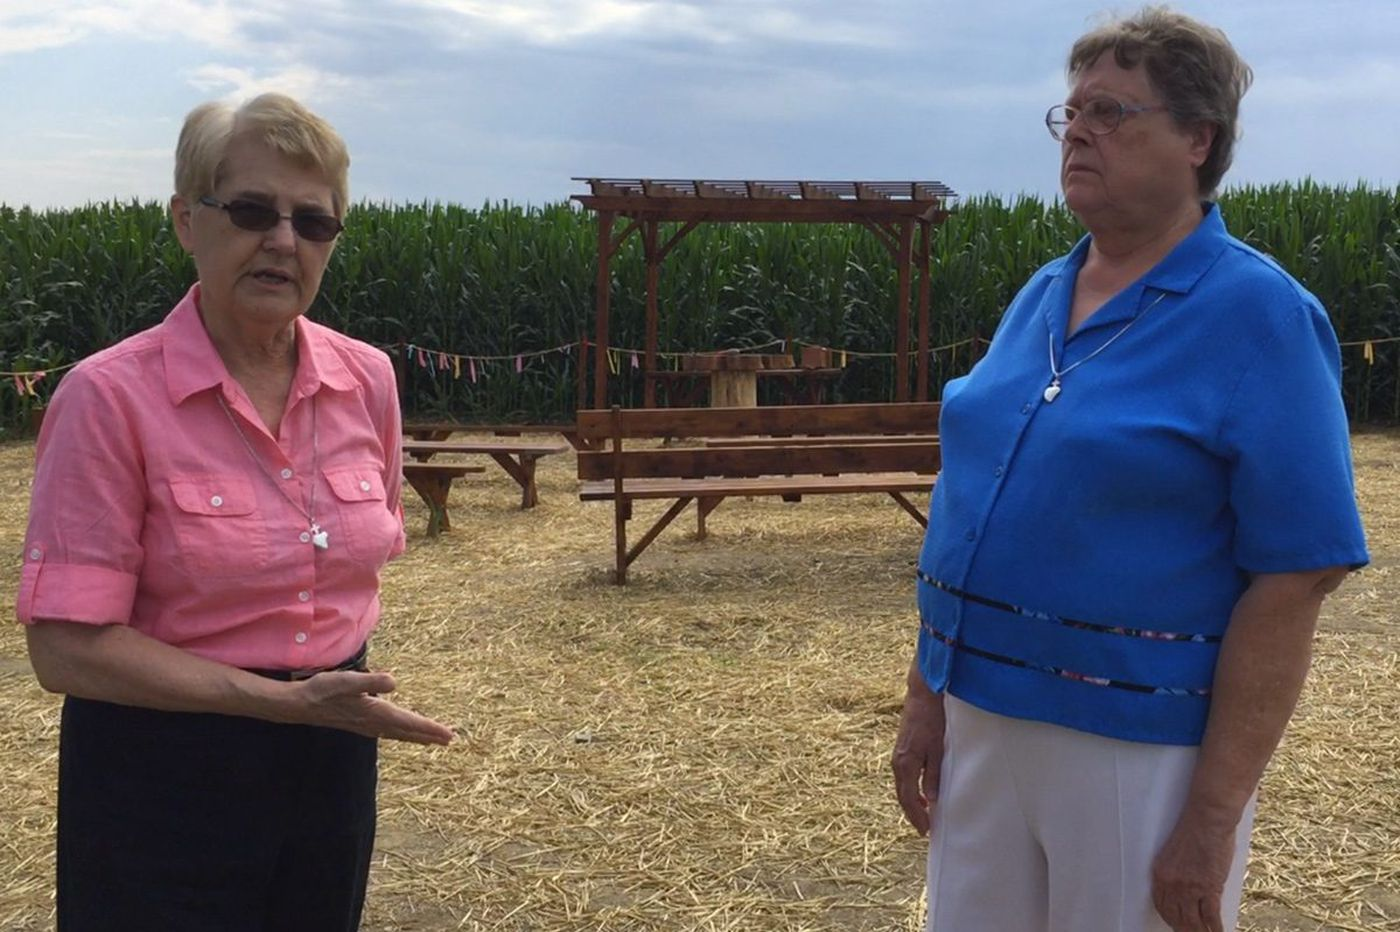 Nuns want religious freedom trial over Lancaster pipeline on their land